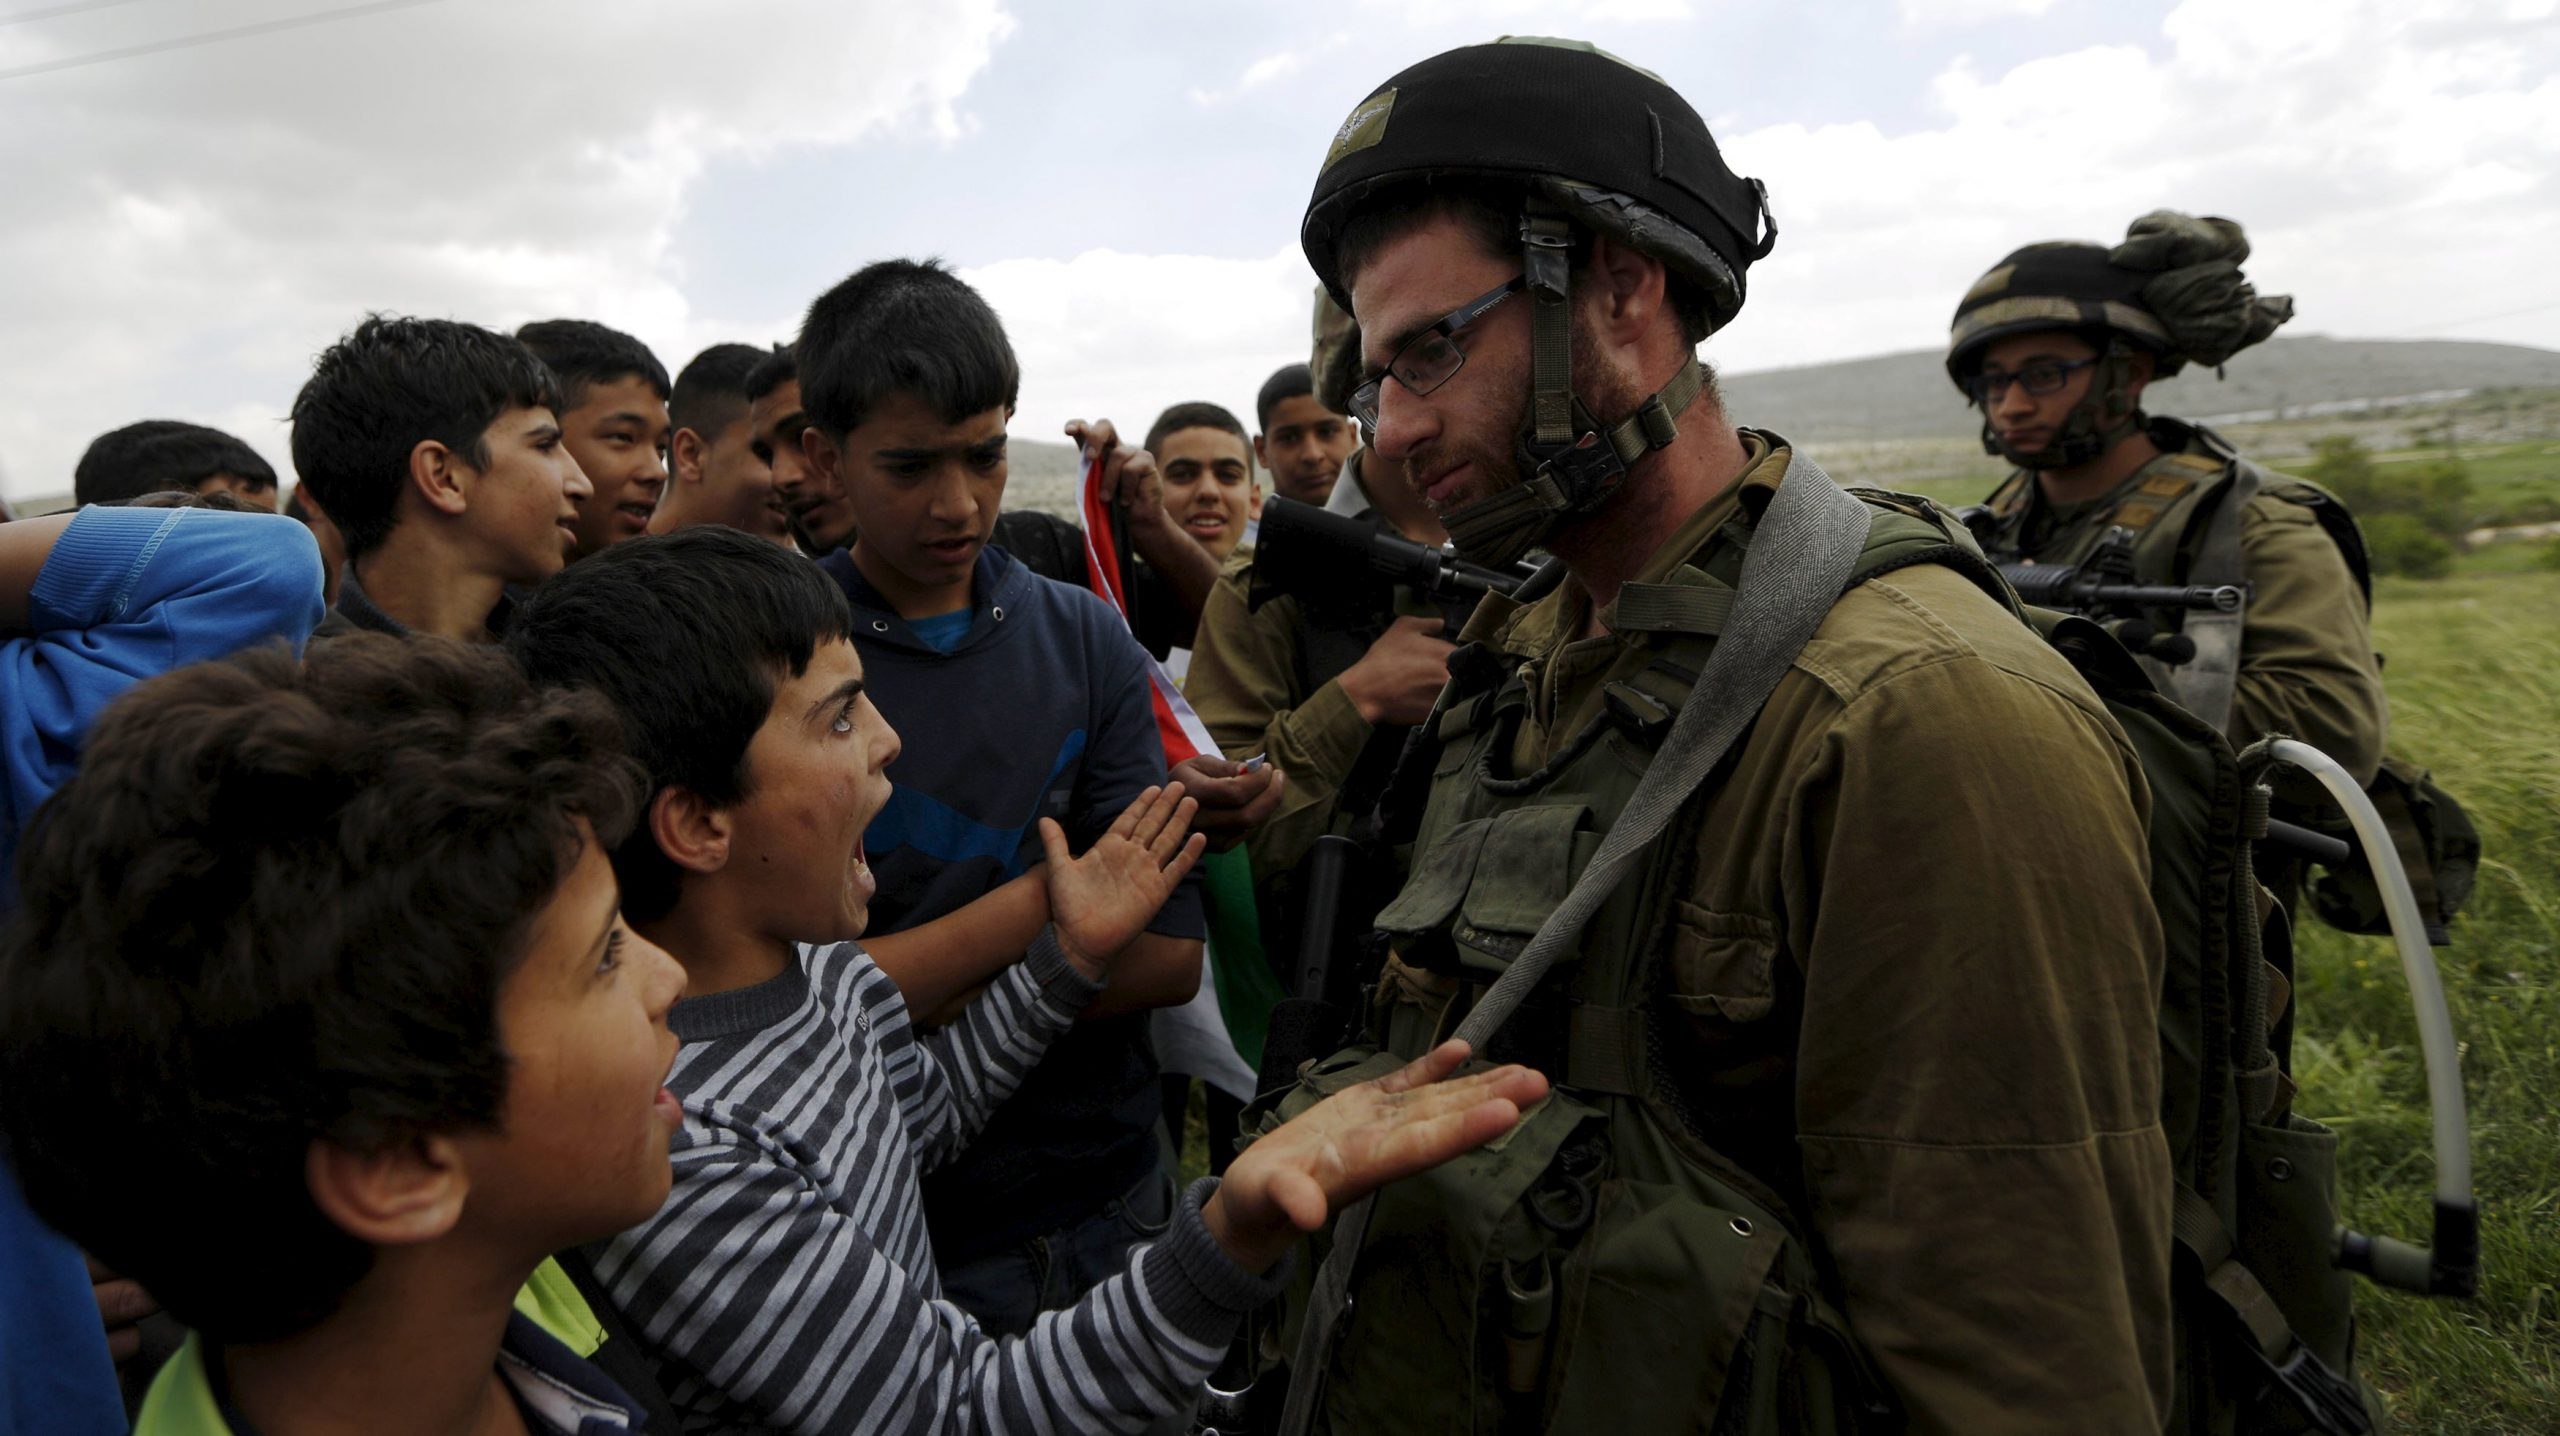 Israel has detained more than 1000 Palestinian children since the beginning of the year